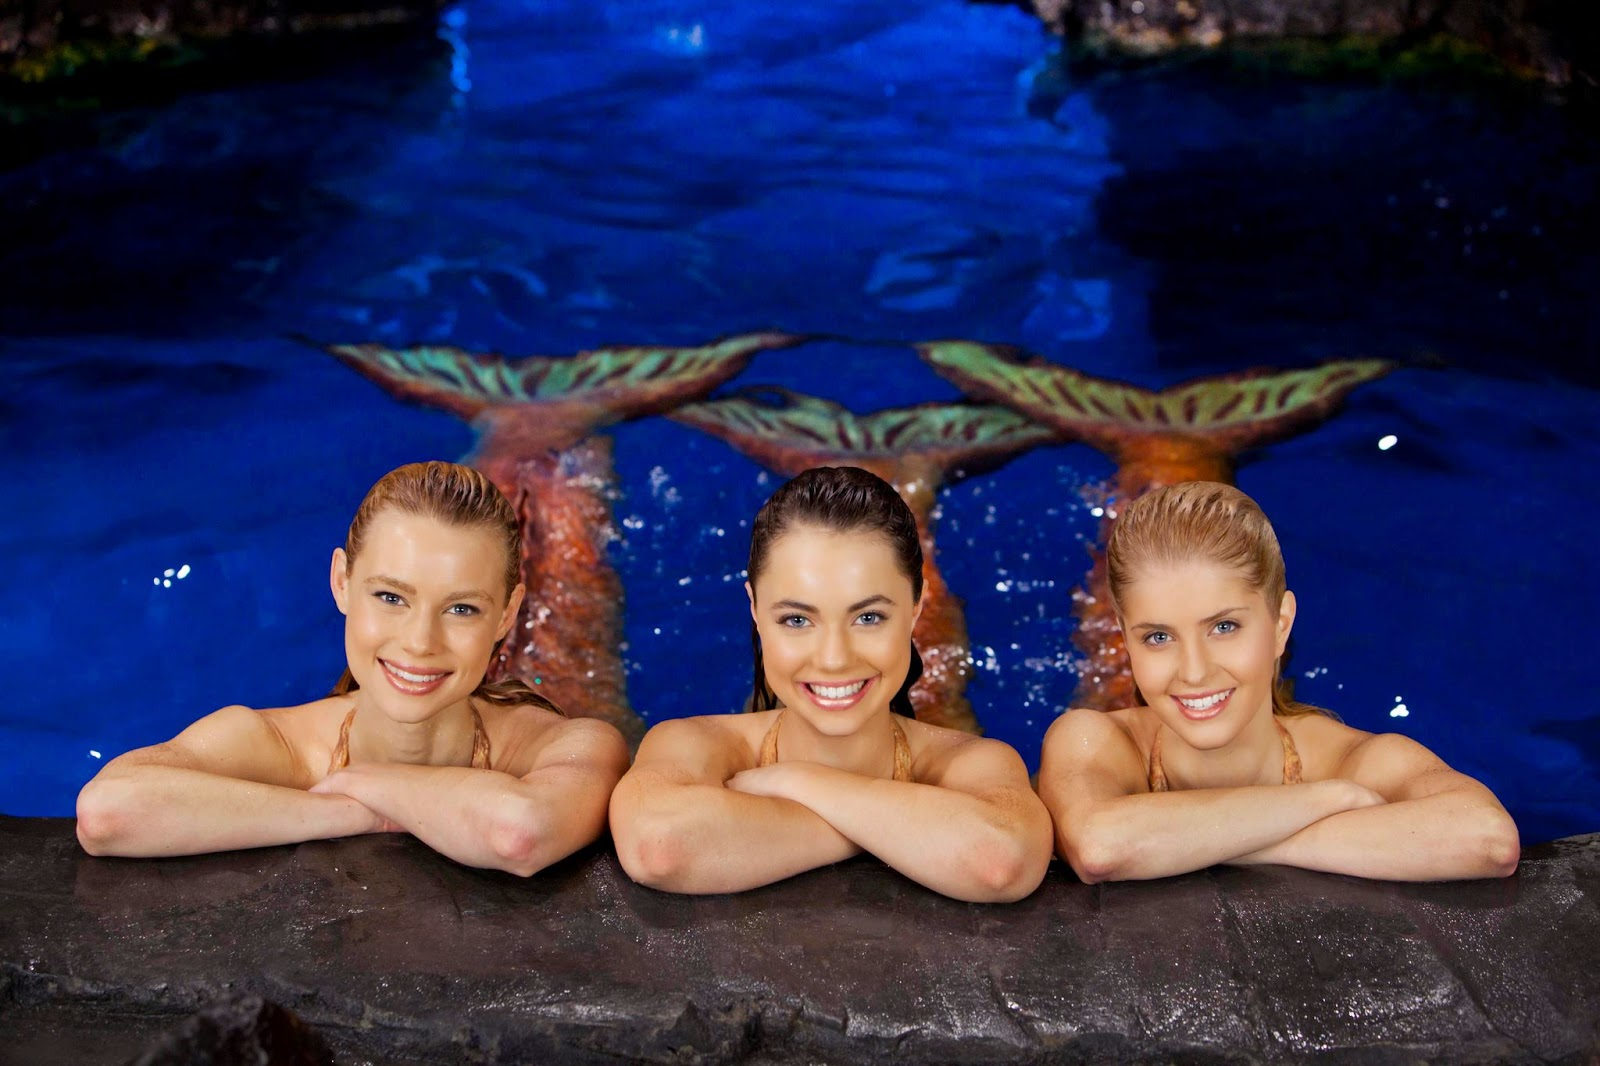 Nickalive nickelodeon australia and new zealand to for H2o actors